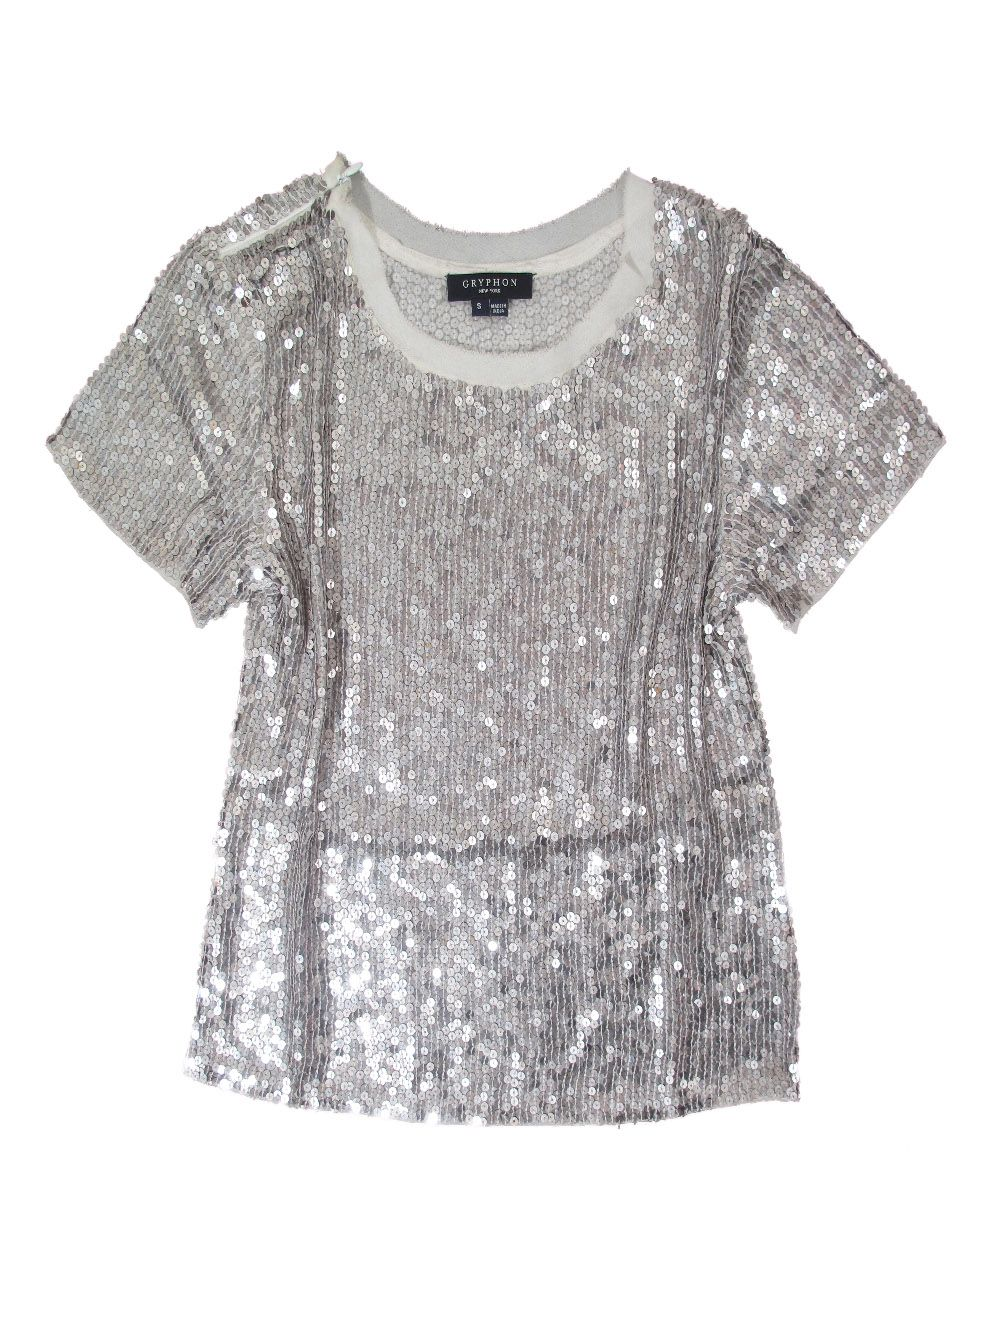 gryphon sequin t shirt in silver lyst. Black Bedroom Furniture Sets. Home Design Ideas